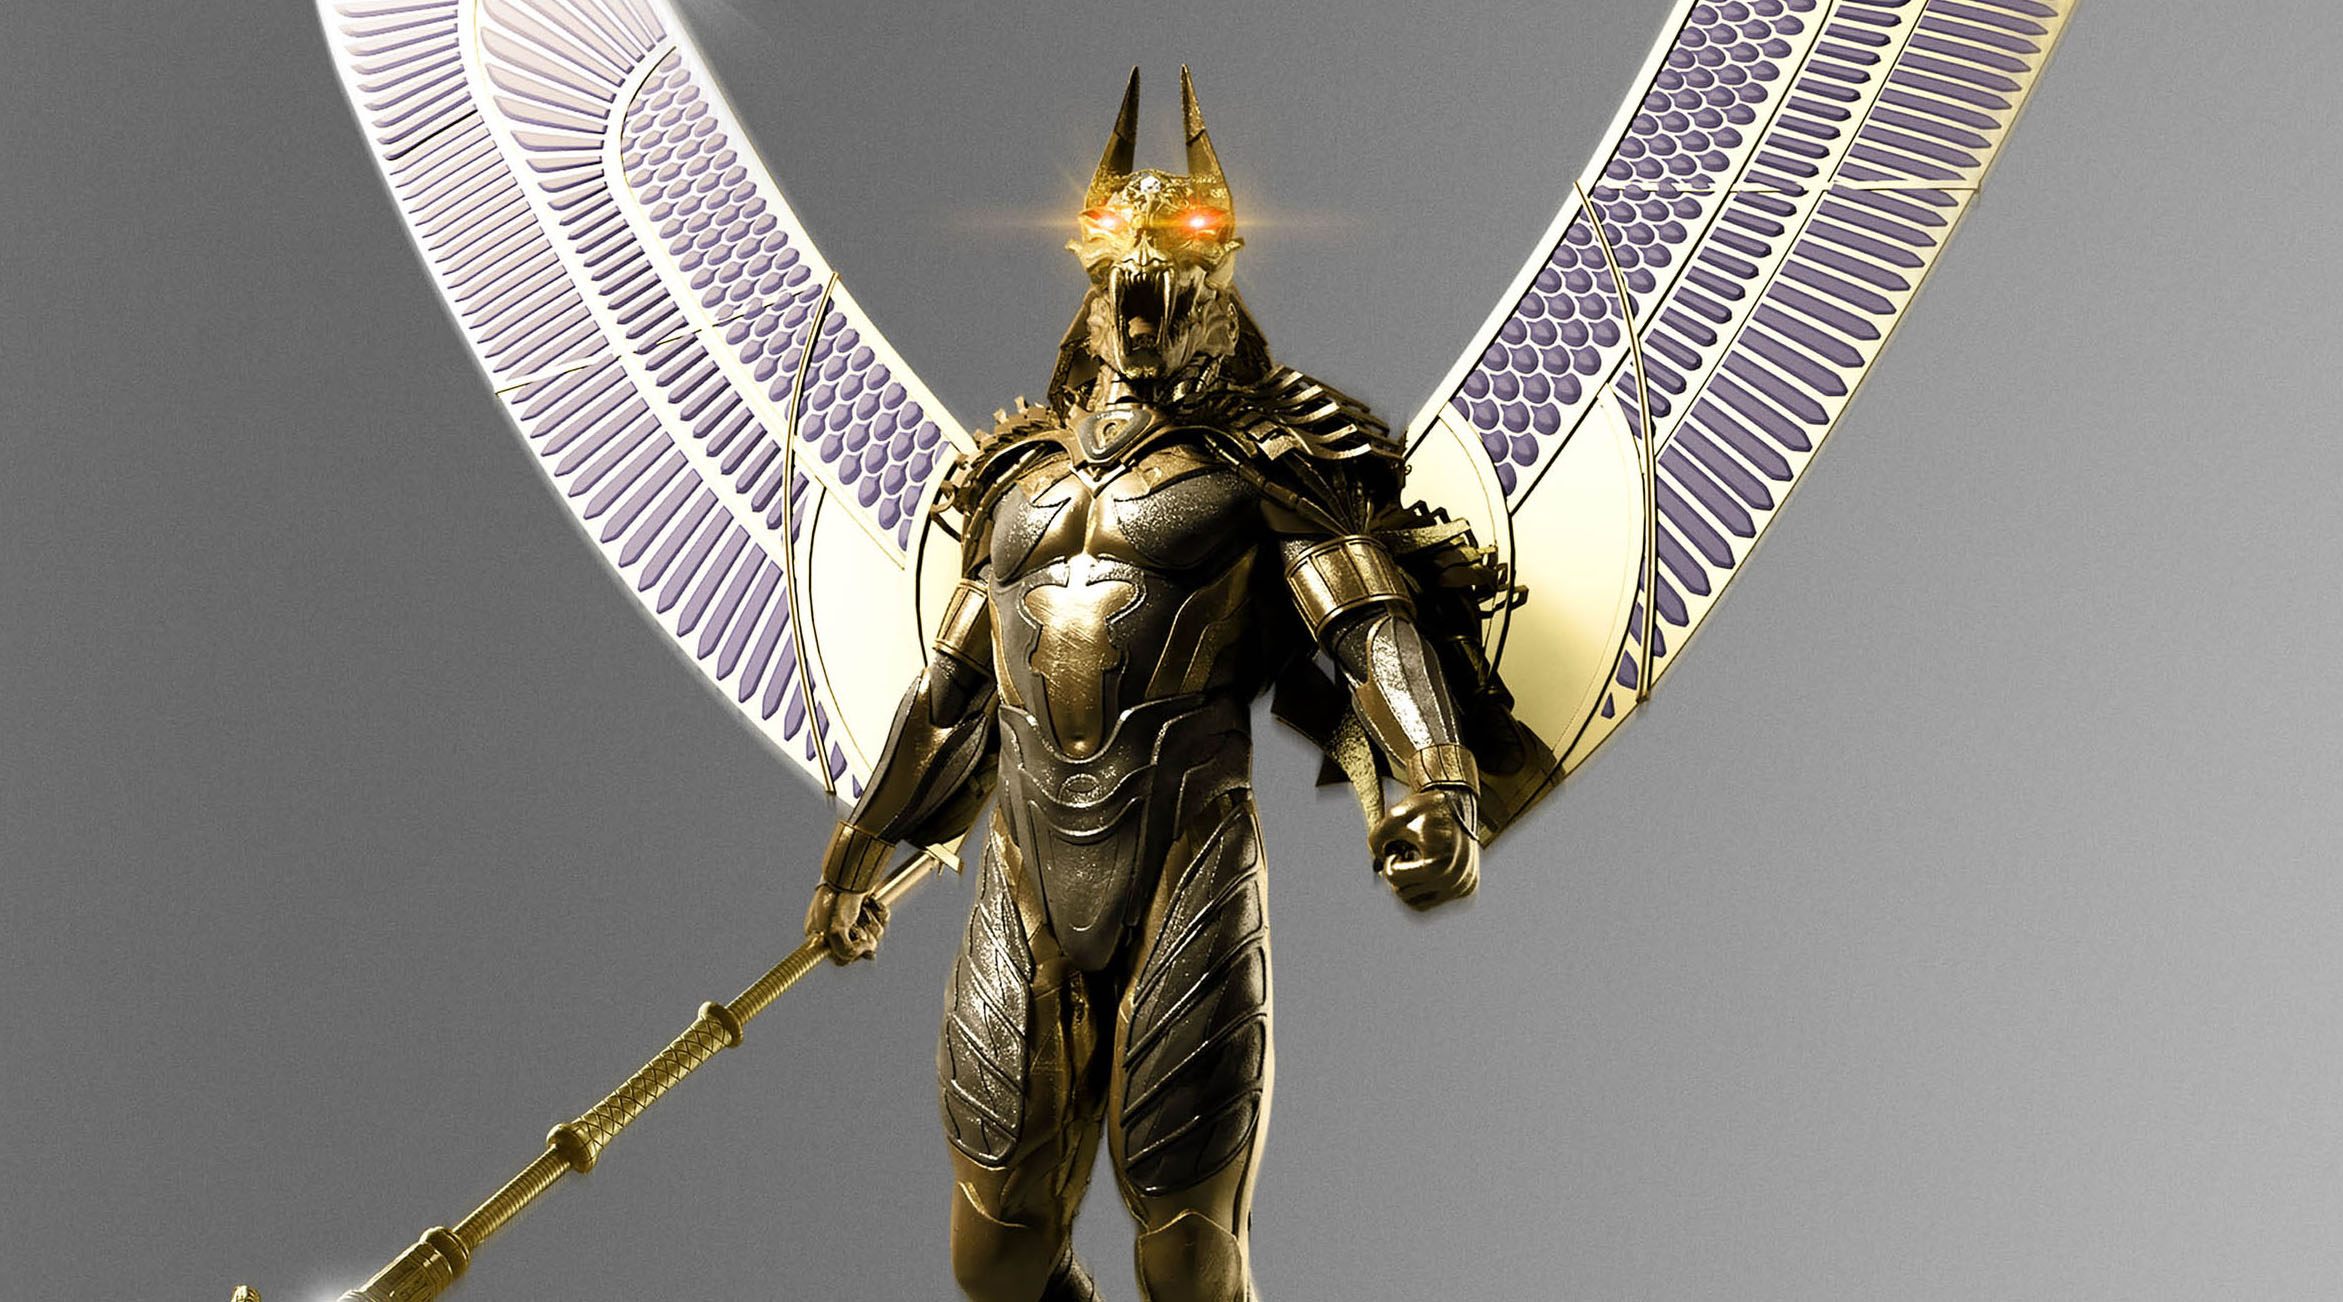 Gods Of Egypt Wallpapers High Resolution And Quality Download